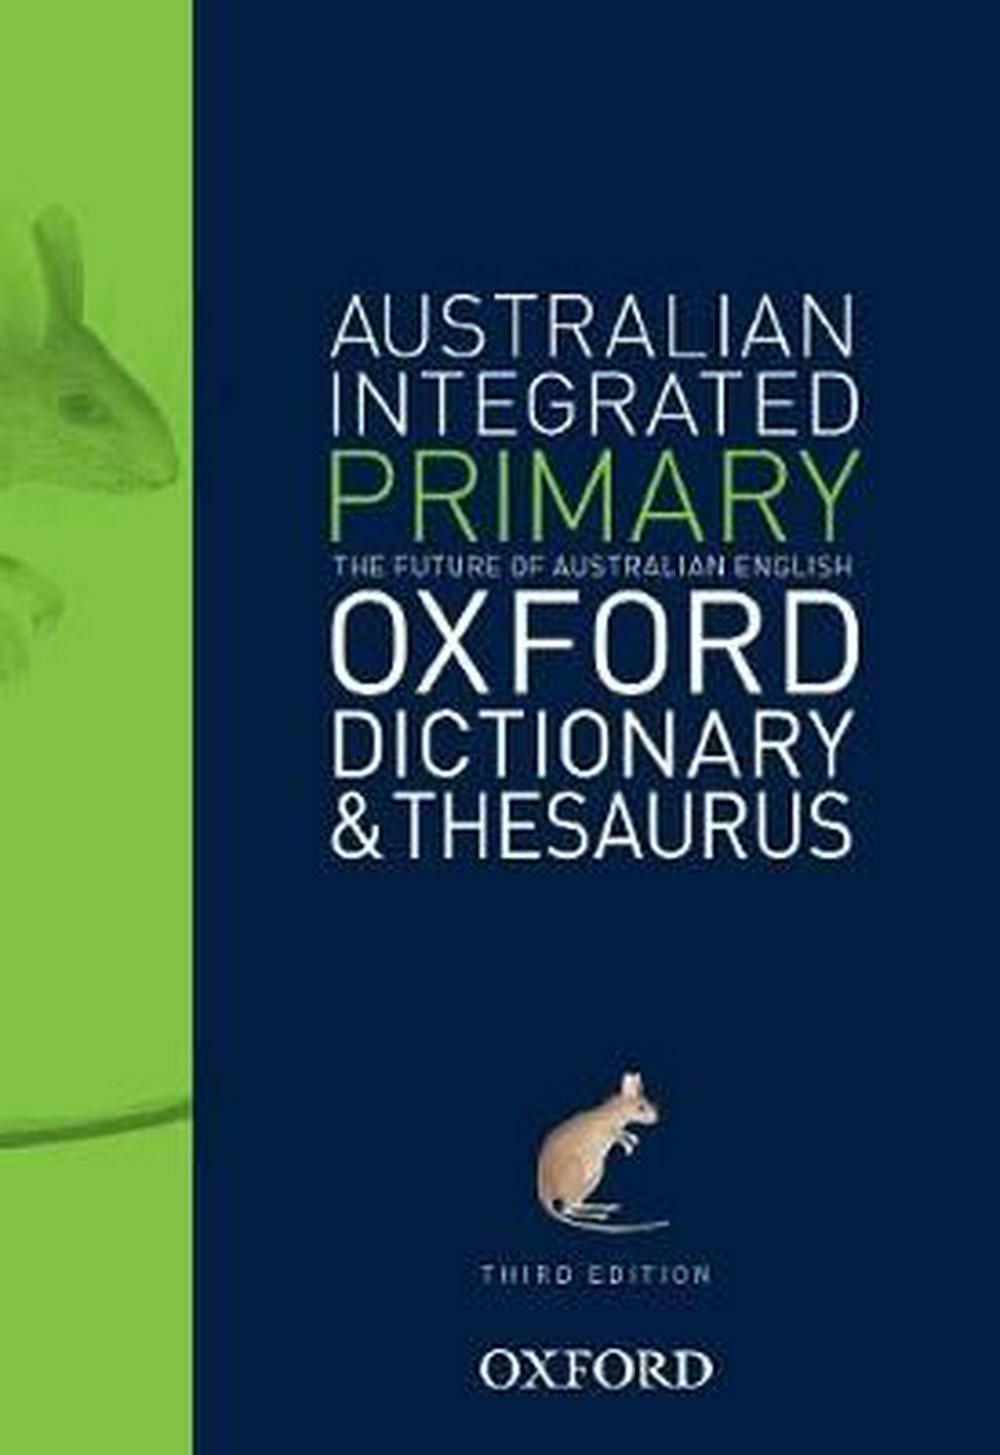 Australian Integrated Primary Oxford Dictionary and Thesaurus